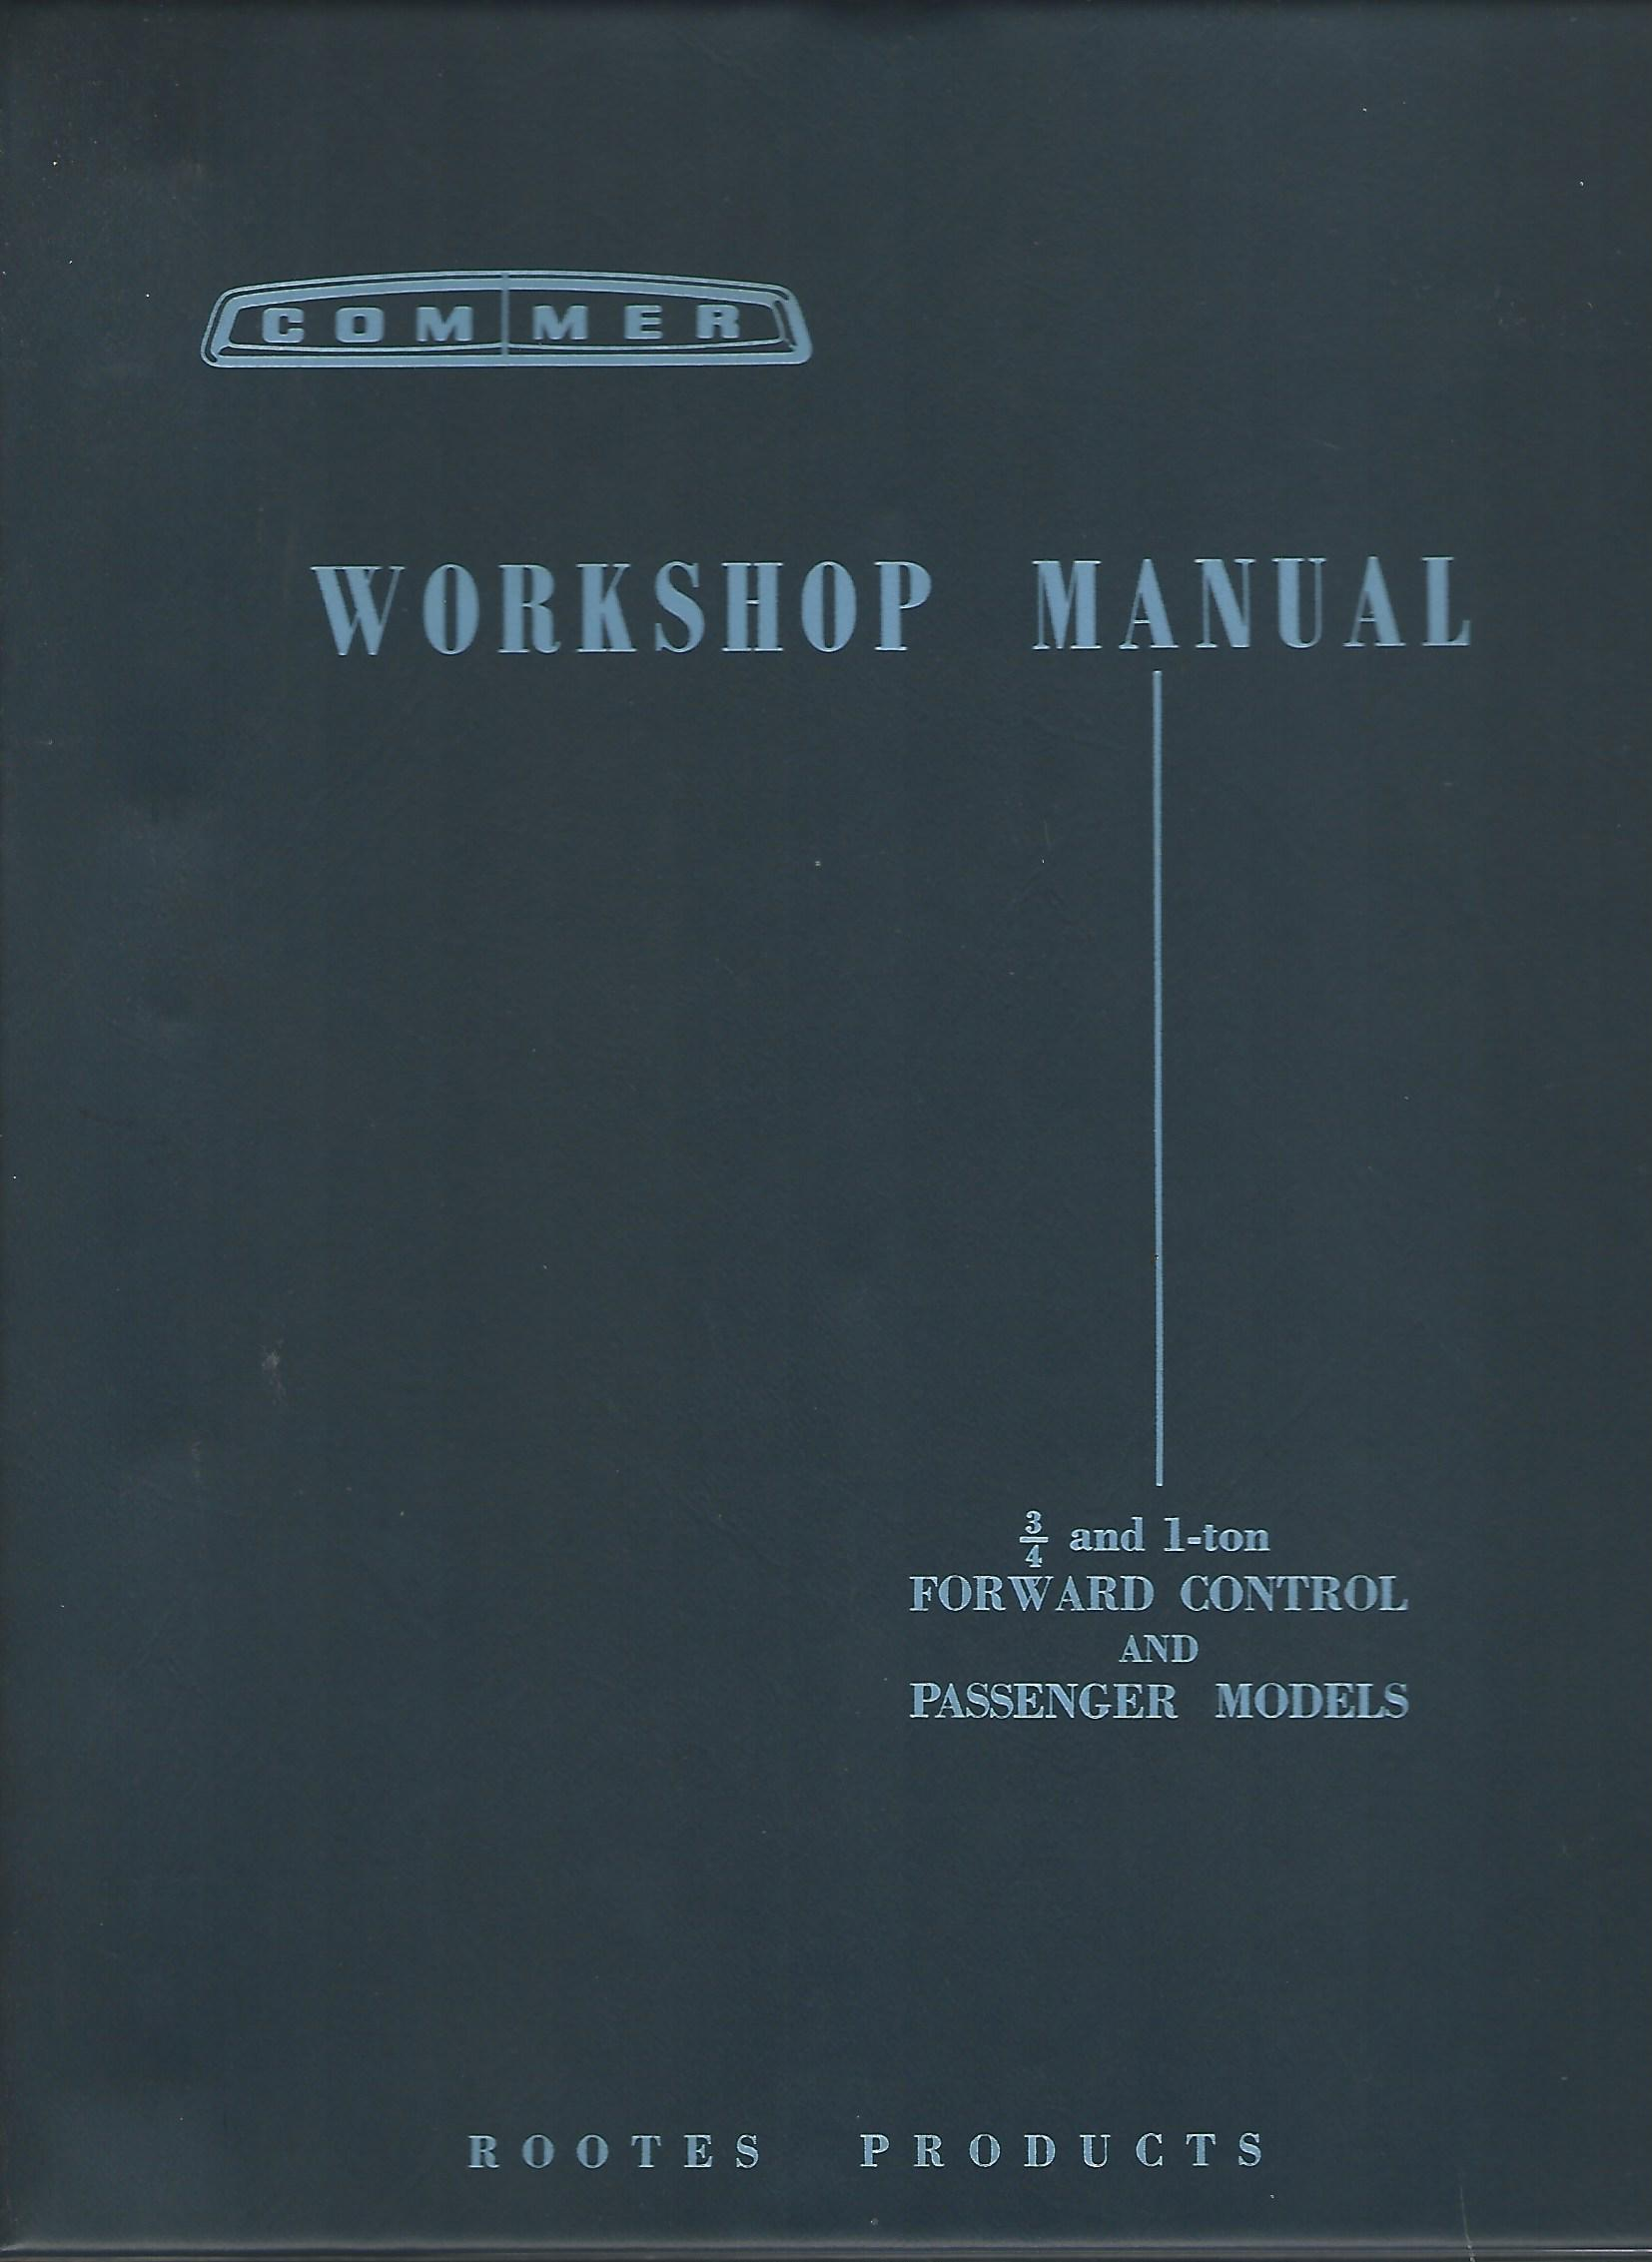 Image for Workshop Manual Supplement for 3/4 ton Series II and IIA and 1-ton 2500 series Forward Control and Passenger Models.